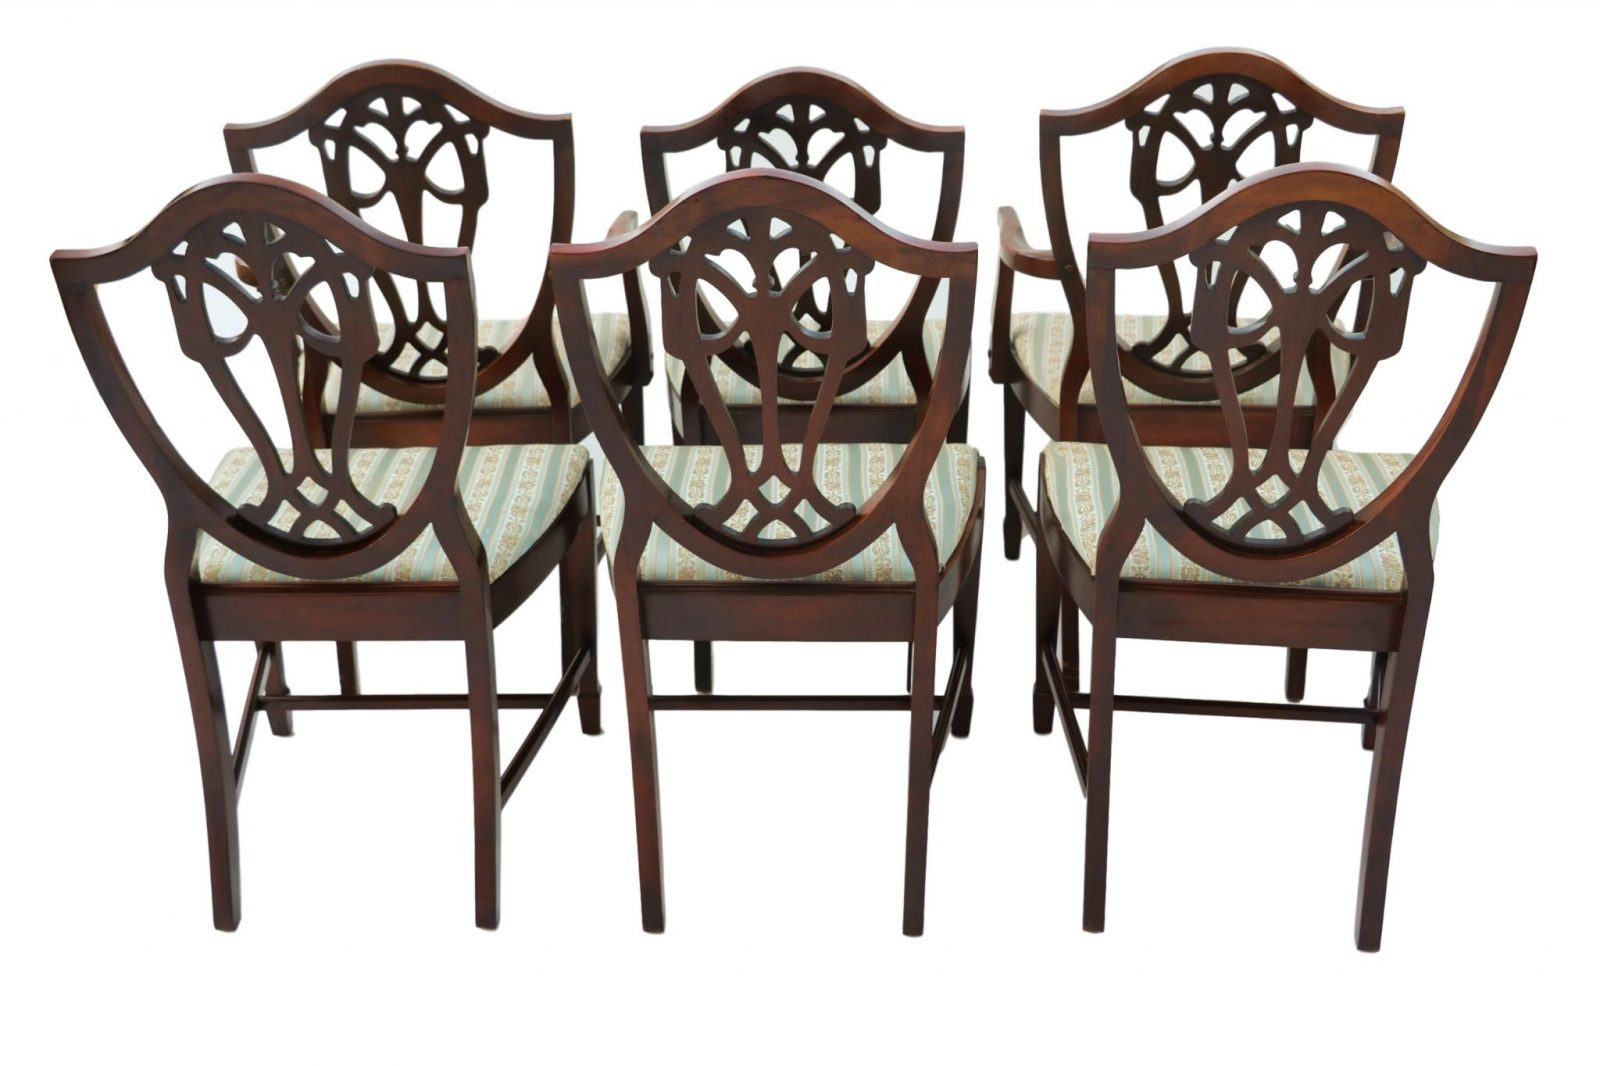 100 Shield Back Dining Room Chairs Set Of 8  : Mahogany George III Style Hepplewhite Shield Back Dining Chairs Six 6 from ll100proof.com size 2048 x 1365 jpeg 208kB